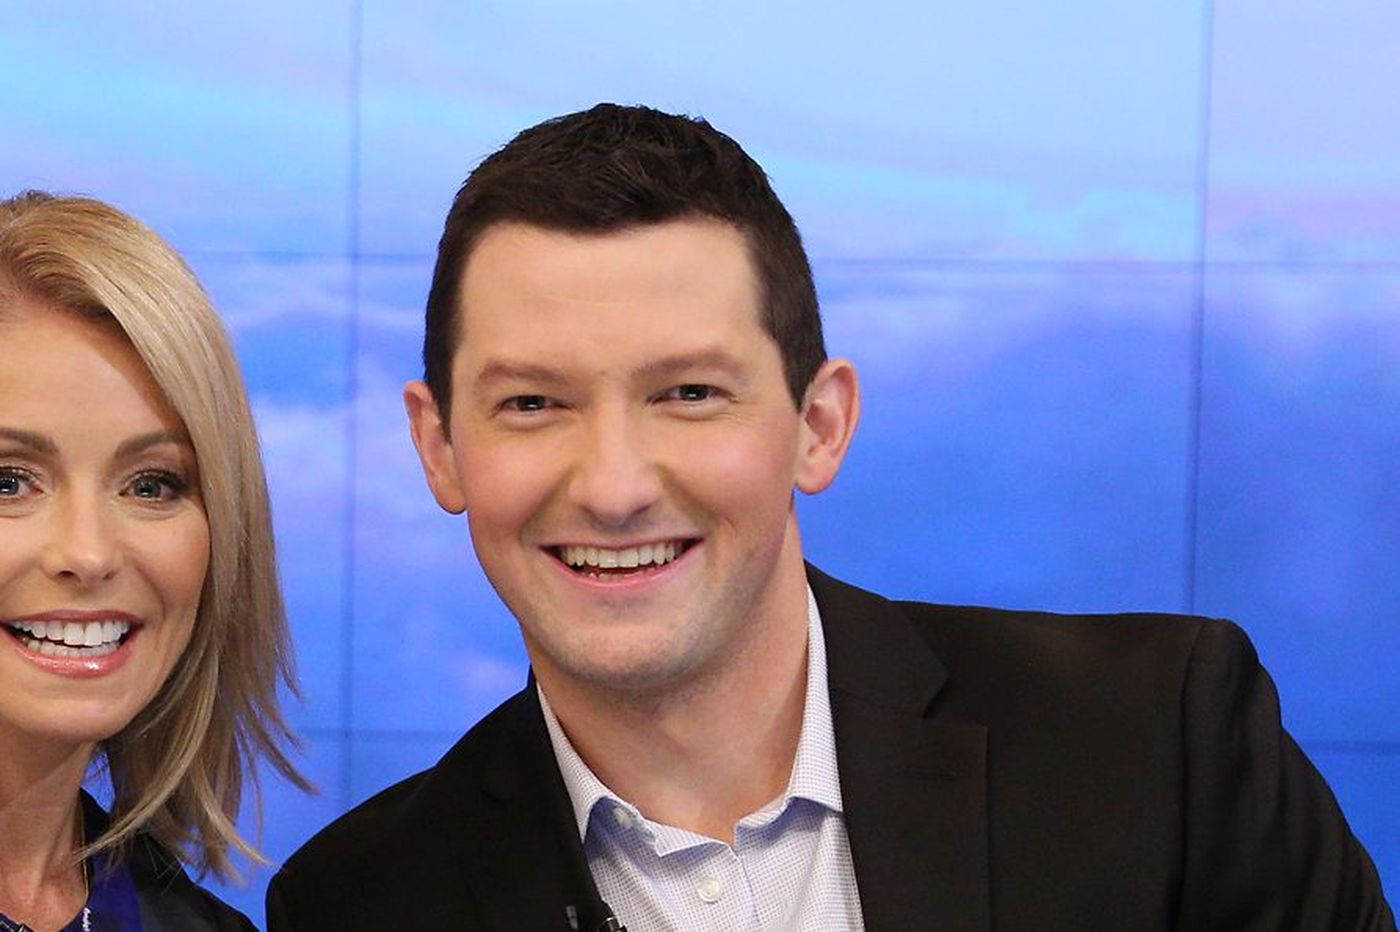 Richard Curtis, Perkasie teacher made famous on 'Live with Kelly,' gets his own TV show on Fox 29